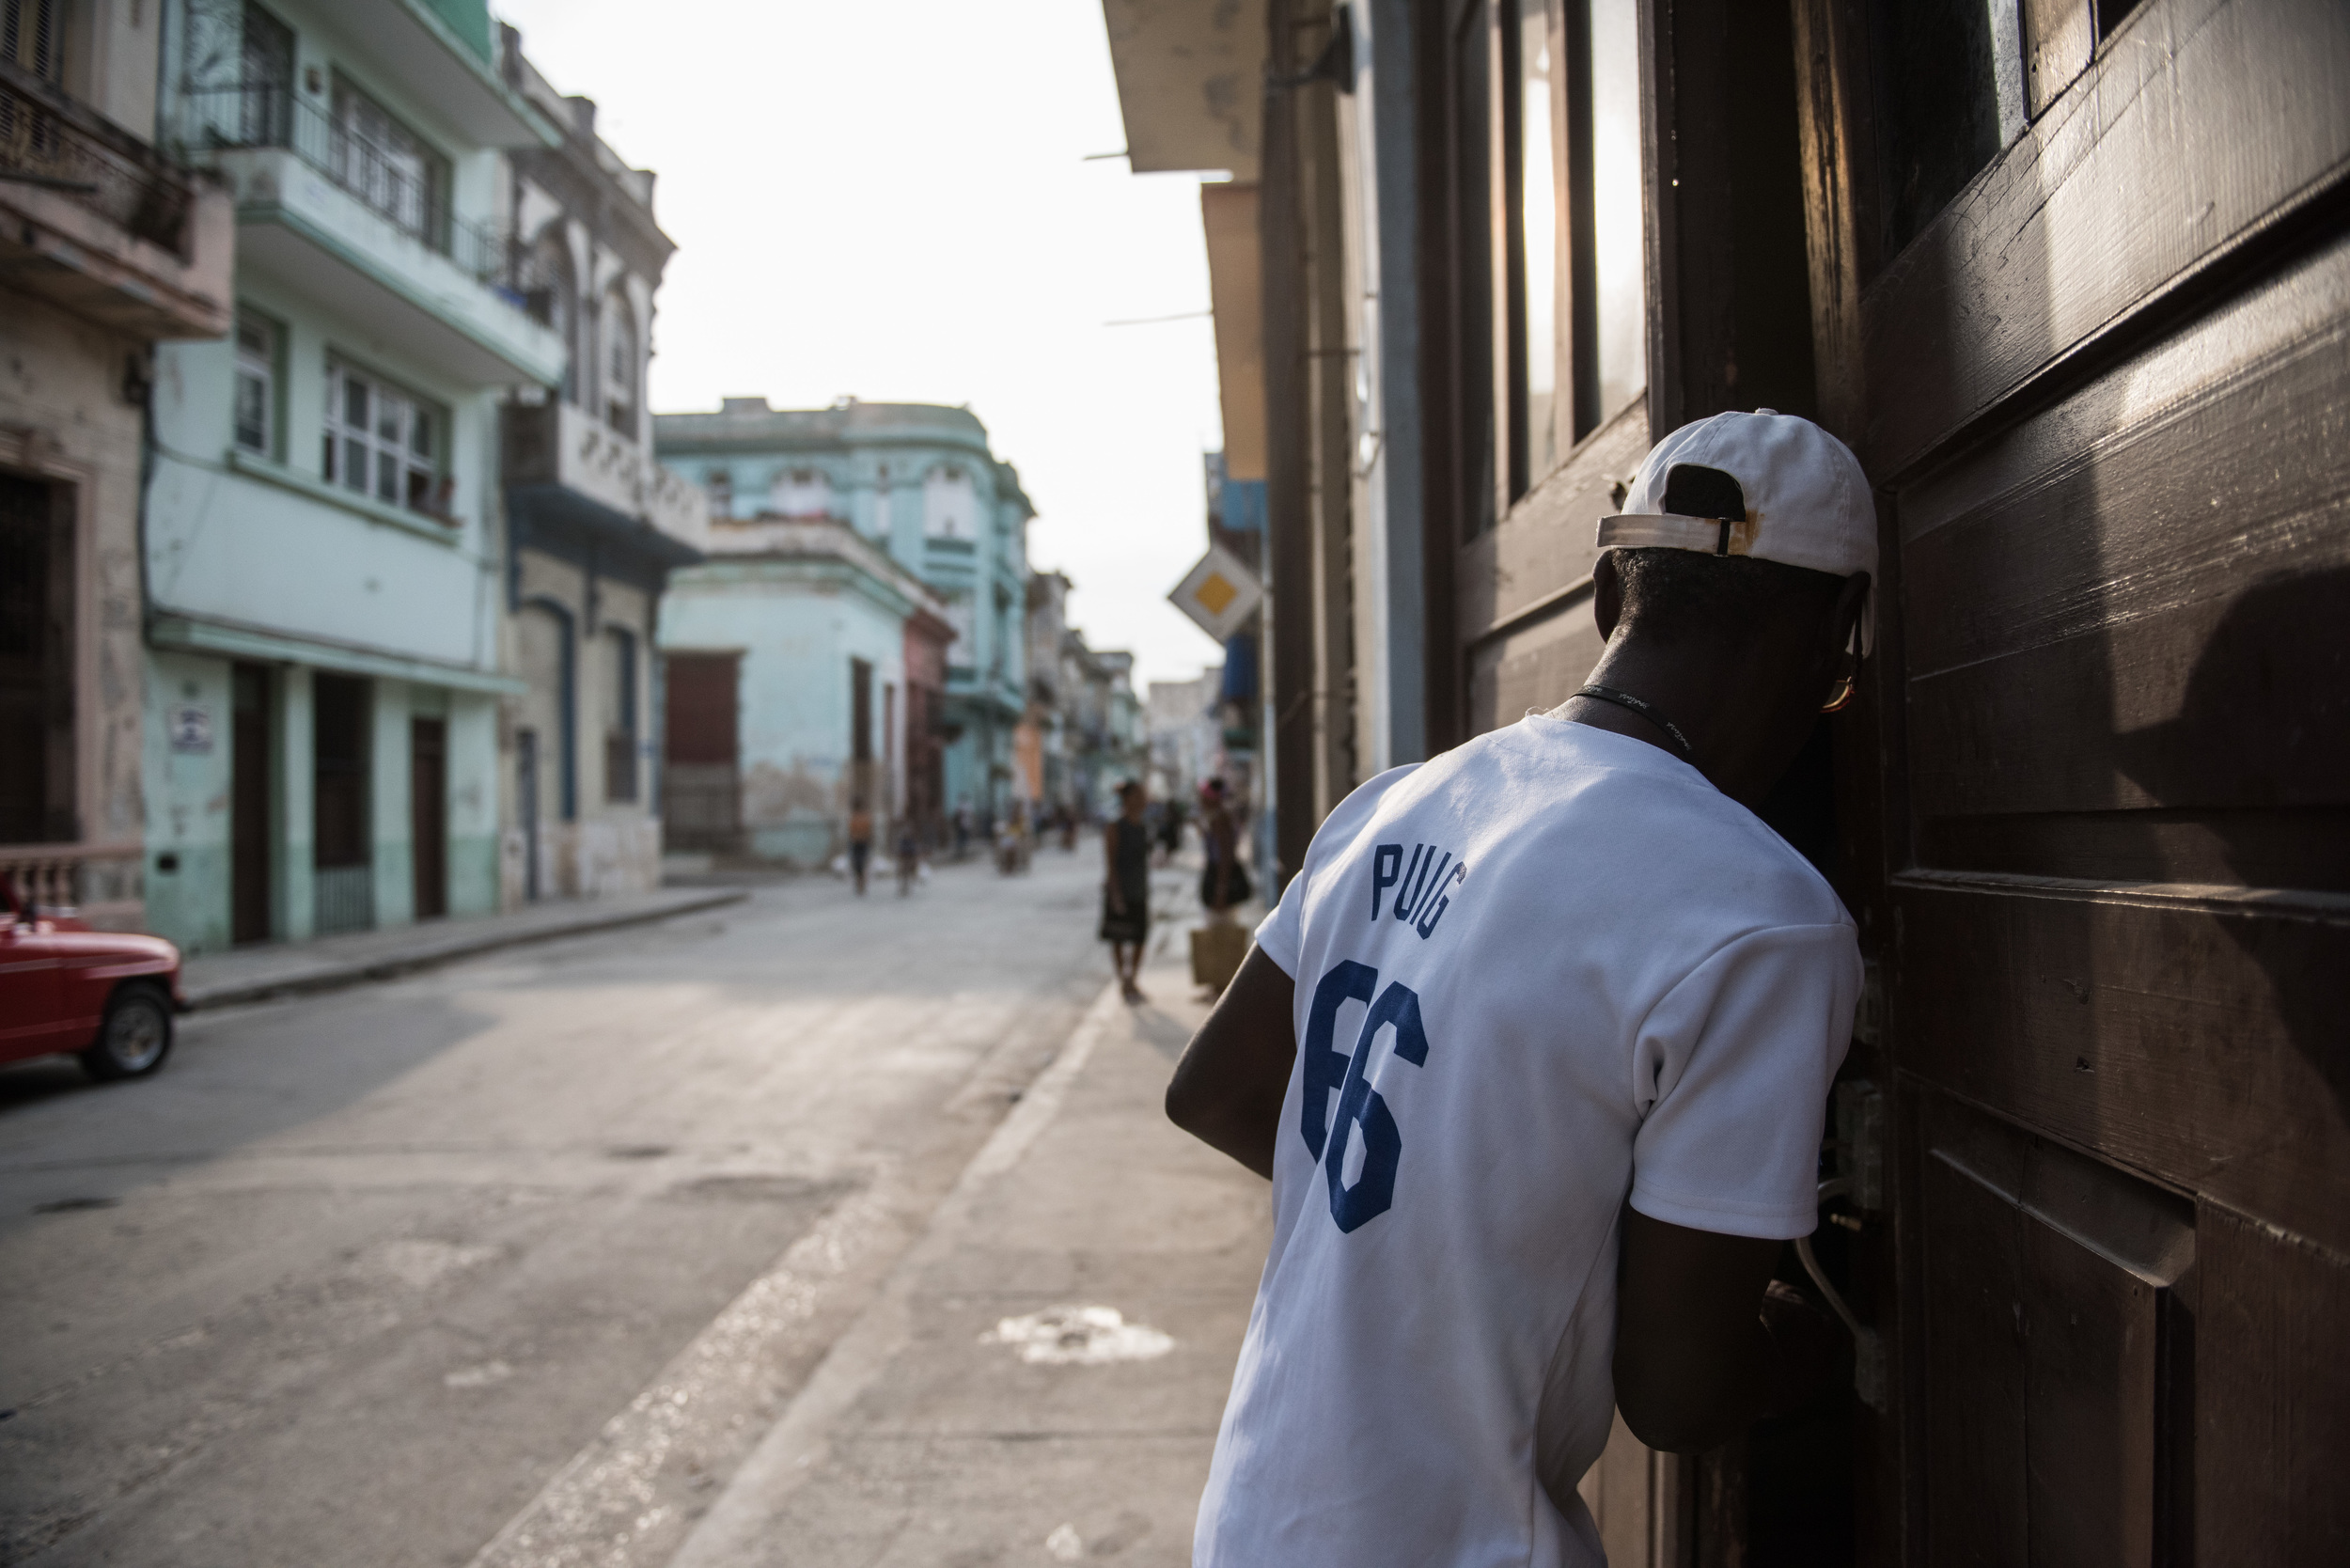 Tony ends his busy day by working as a security guard at a fencing school located close to Havana's Central Park. This allows him to quickly get to his job after an eventful day in Havana.